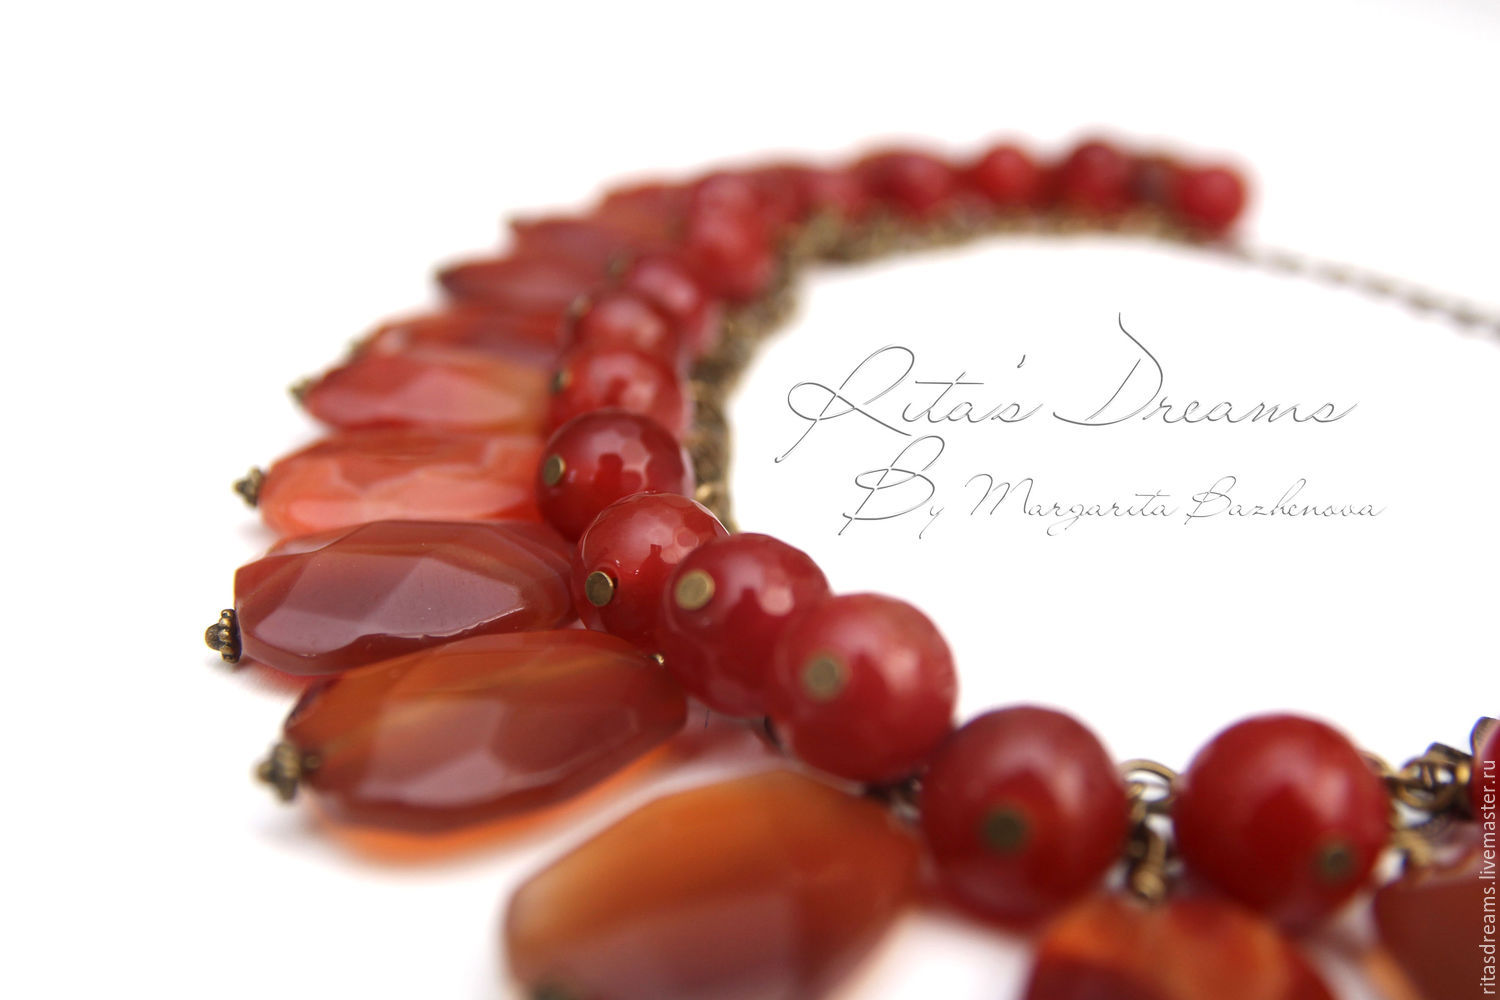 Luxury necklace large stones of carnelian with agate beads-balls in warm honey shades has a maximum length of 46.5 cm which can be adjusted through the chain.